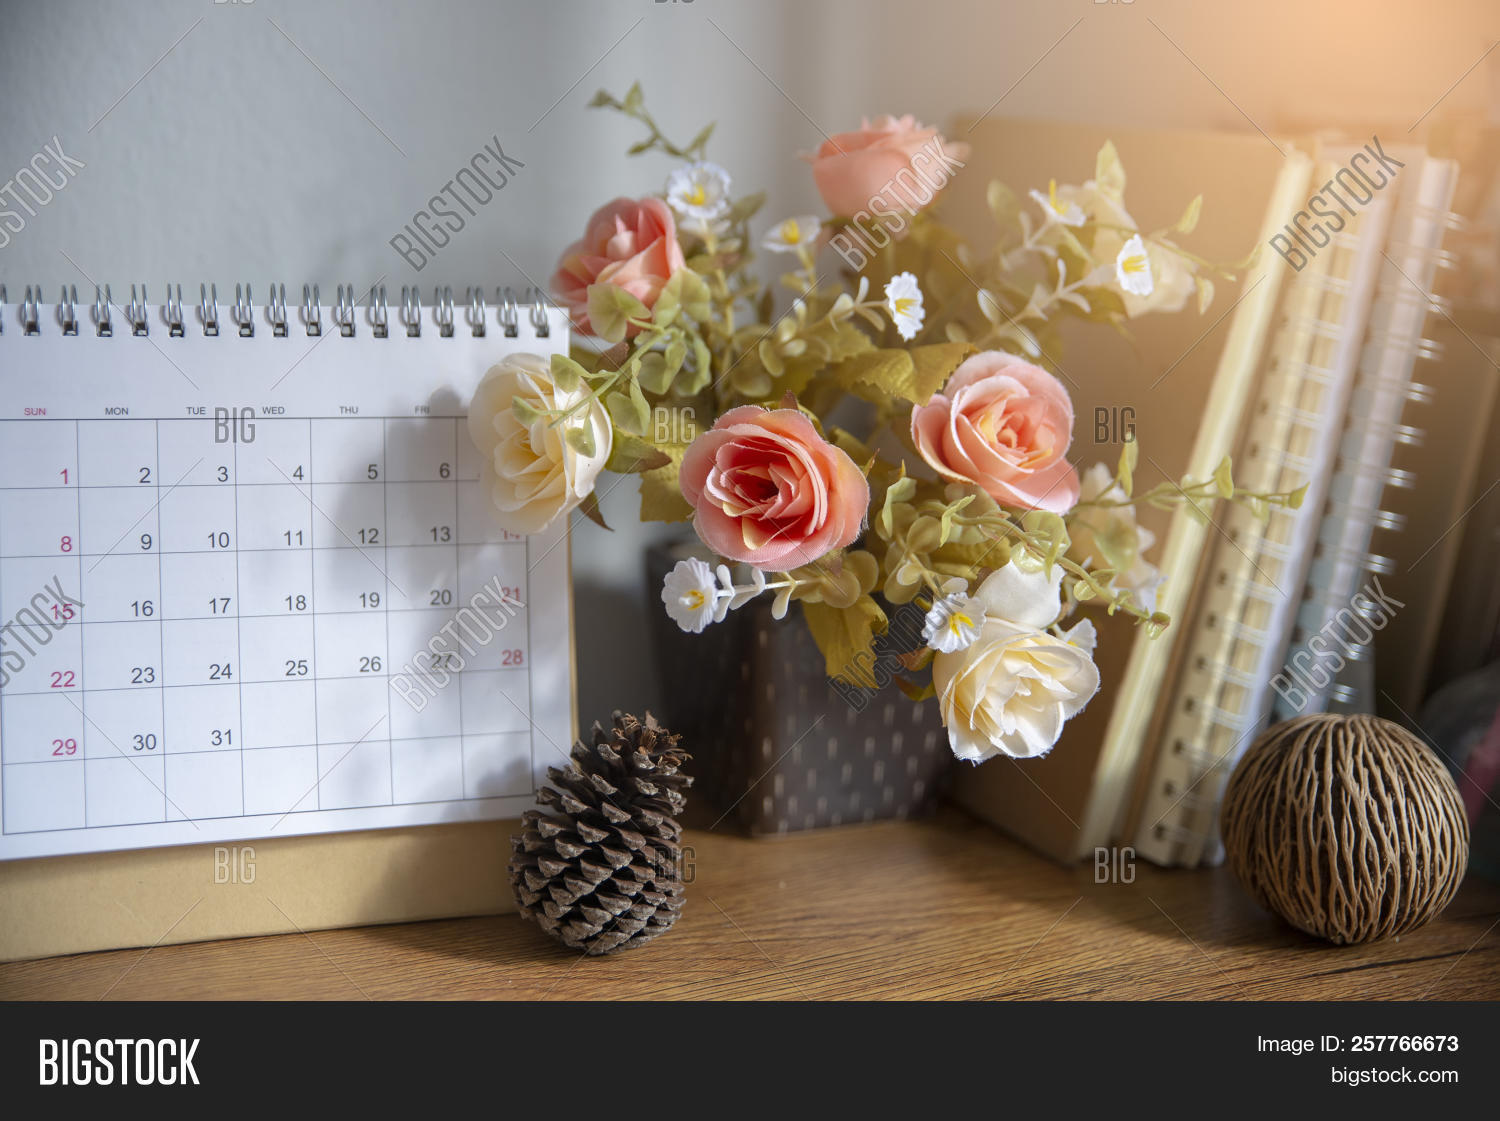 2018,2019,agenda,appointment,background,blank,business,cafe,calendar,calender,coffee,concept,day,desk,desktop,document,education,management,note,office,organization,pad,page,paper,person,place,plan,planer,planner,pot,rose,schedule,shop,space,student,table,time,timetable,view,wedding,week,white,wood,wooden,work,workplace,workspace,writing